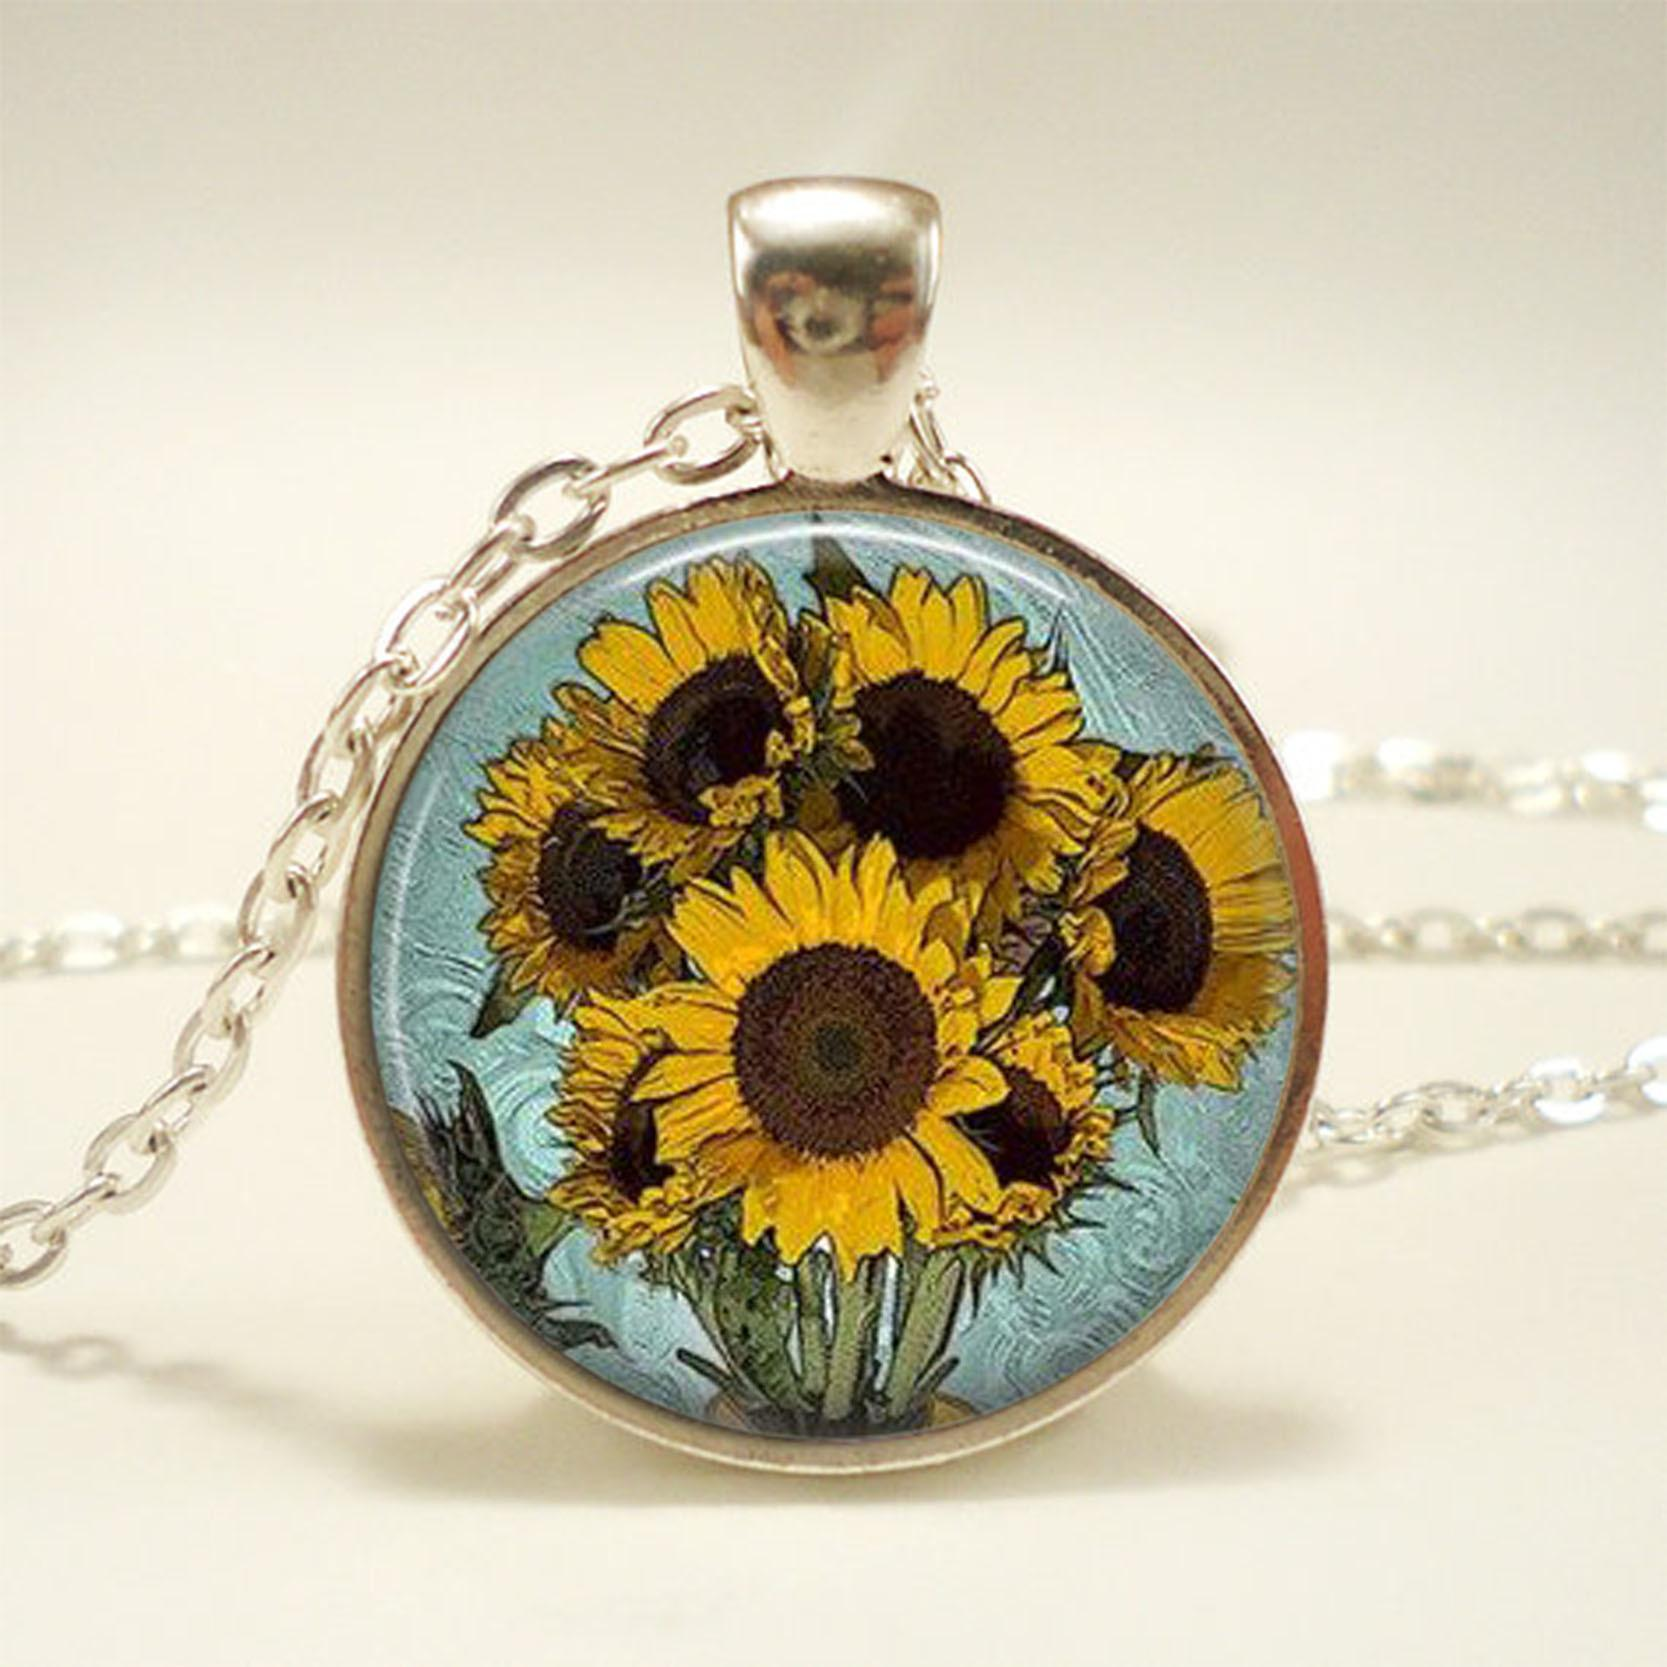 New Fashion Van Gogh Sunflower Glass Cabochon Pendant Necklaces Jewelry Hand Craft Gifts Funny Gifts For Women Men